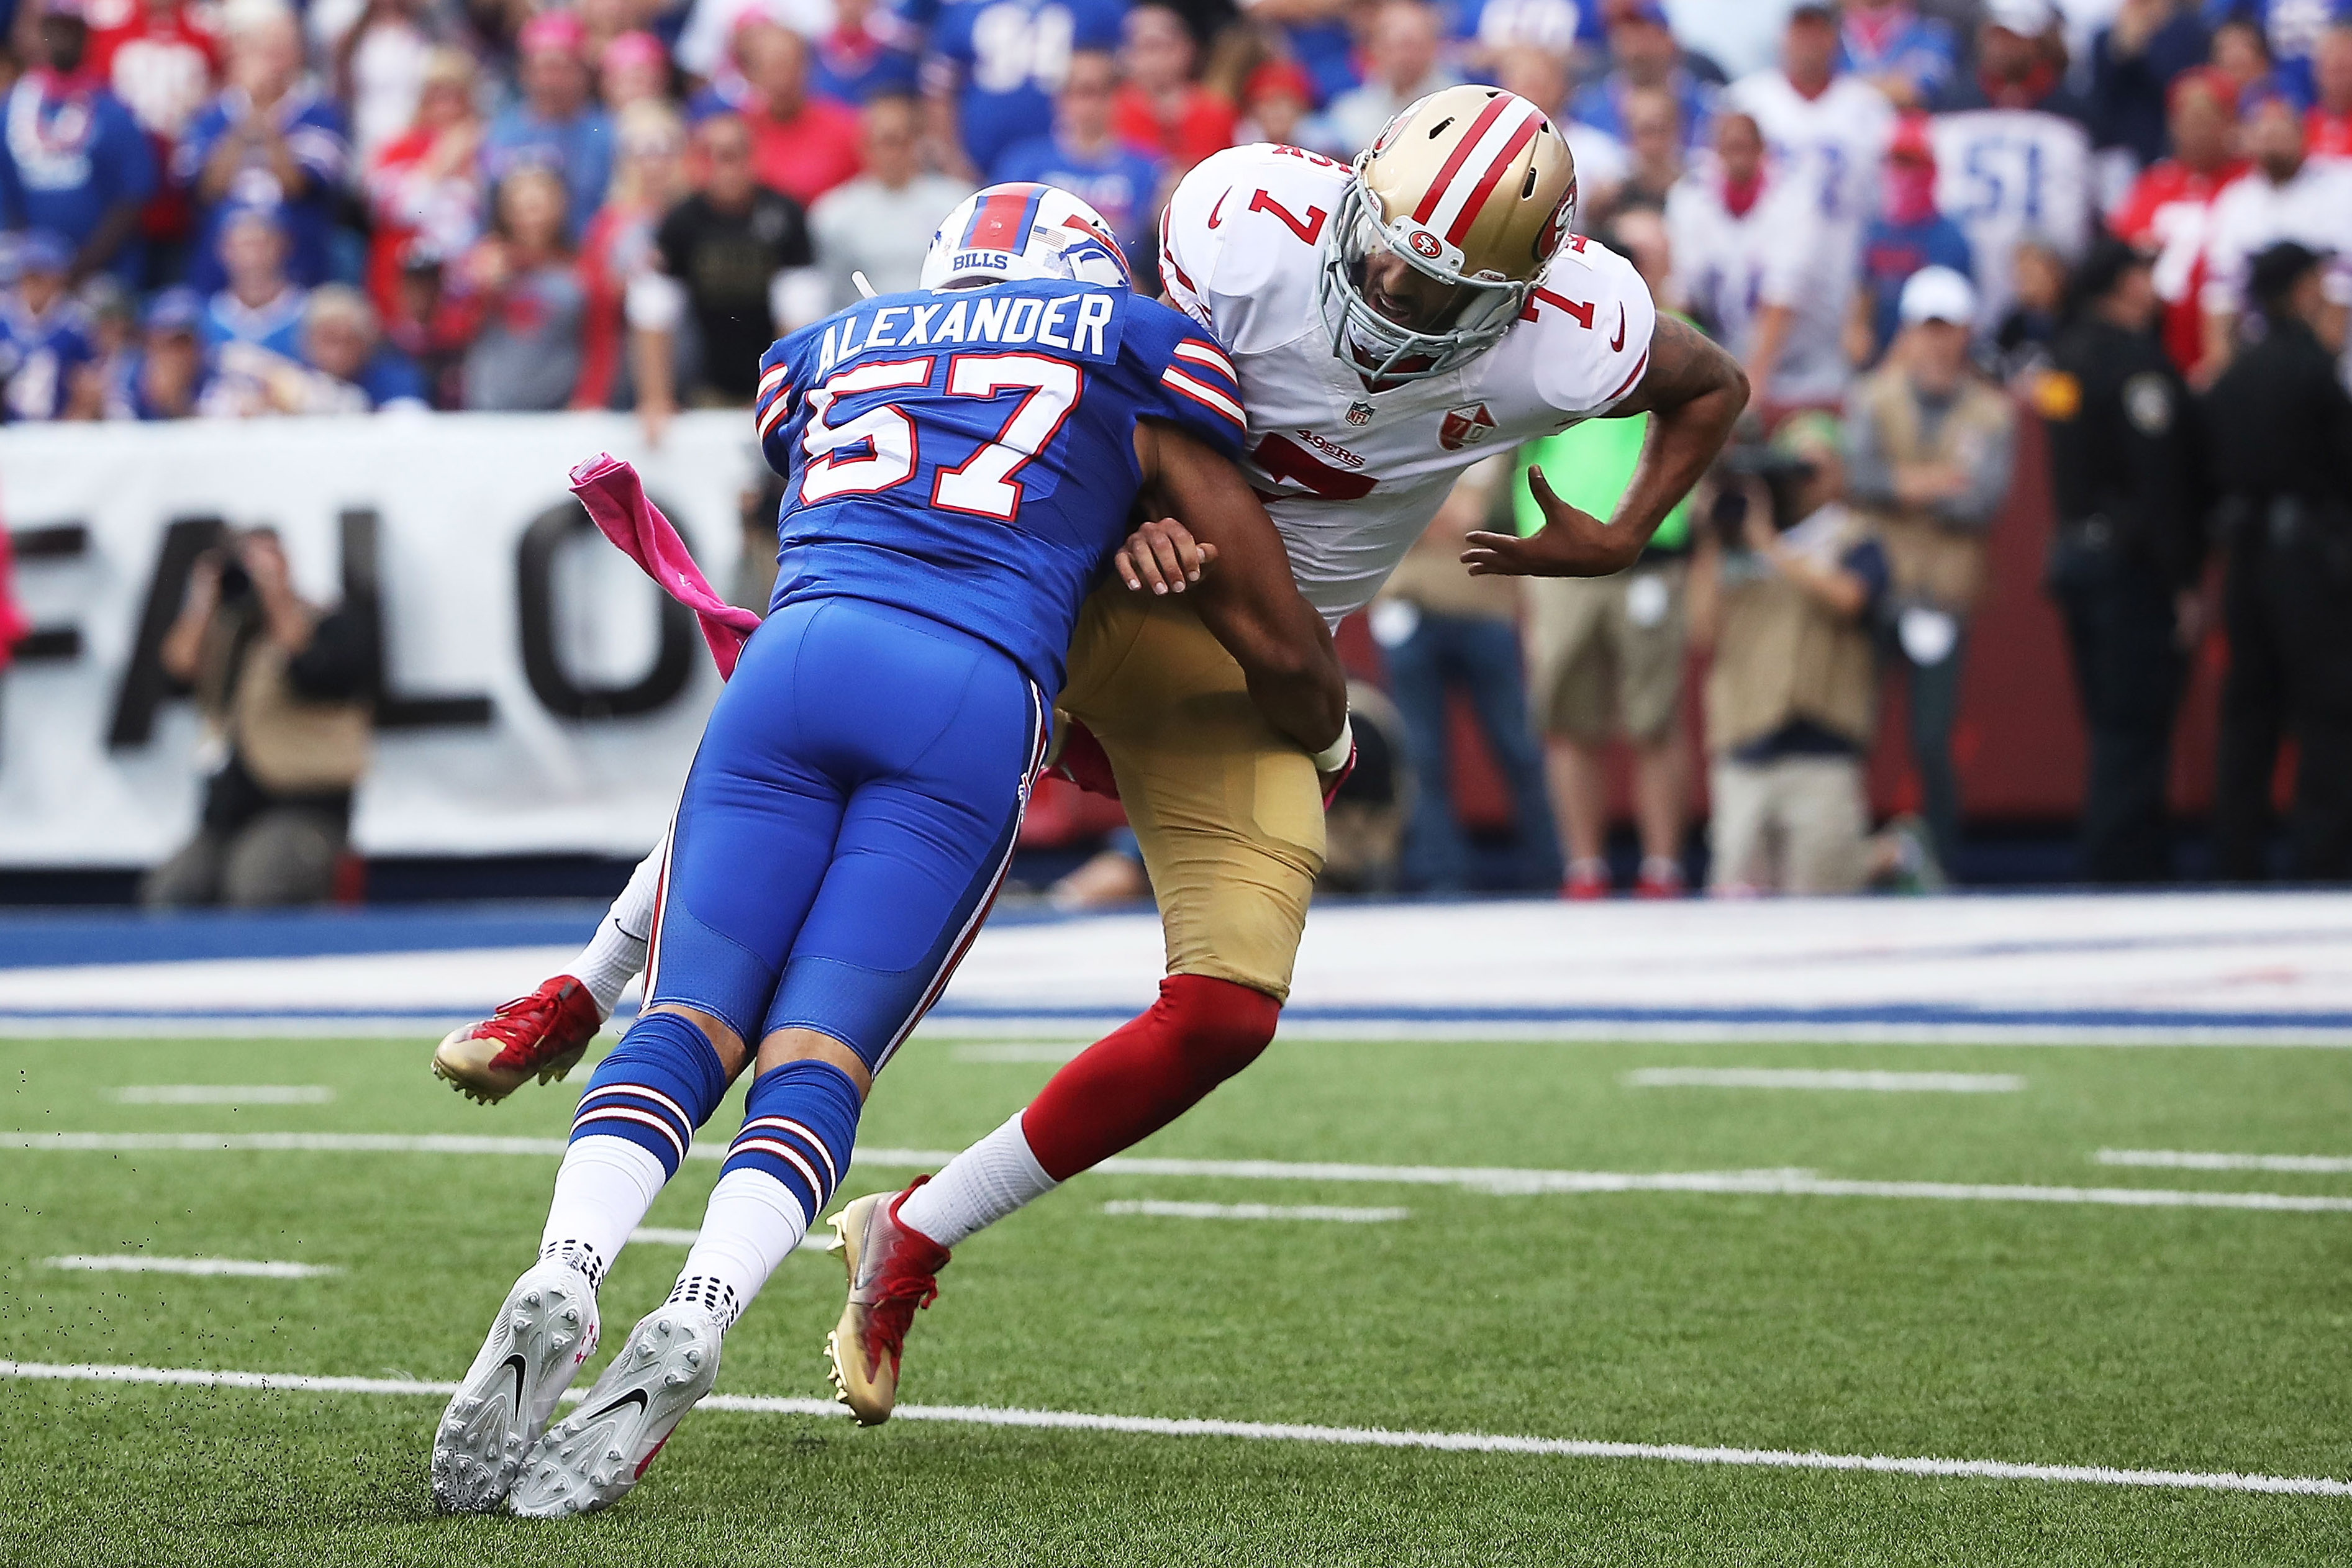 Bills linebacker Lorenzo Alexander grew up a 49ers fan, but attended more Oakland Raiders games. (Getty Images)